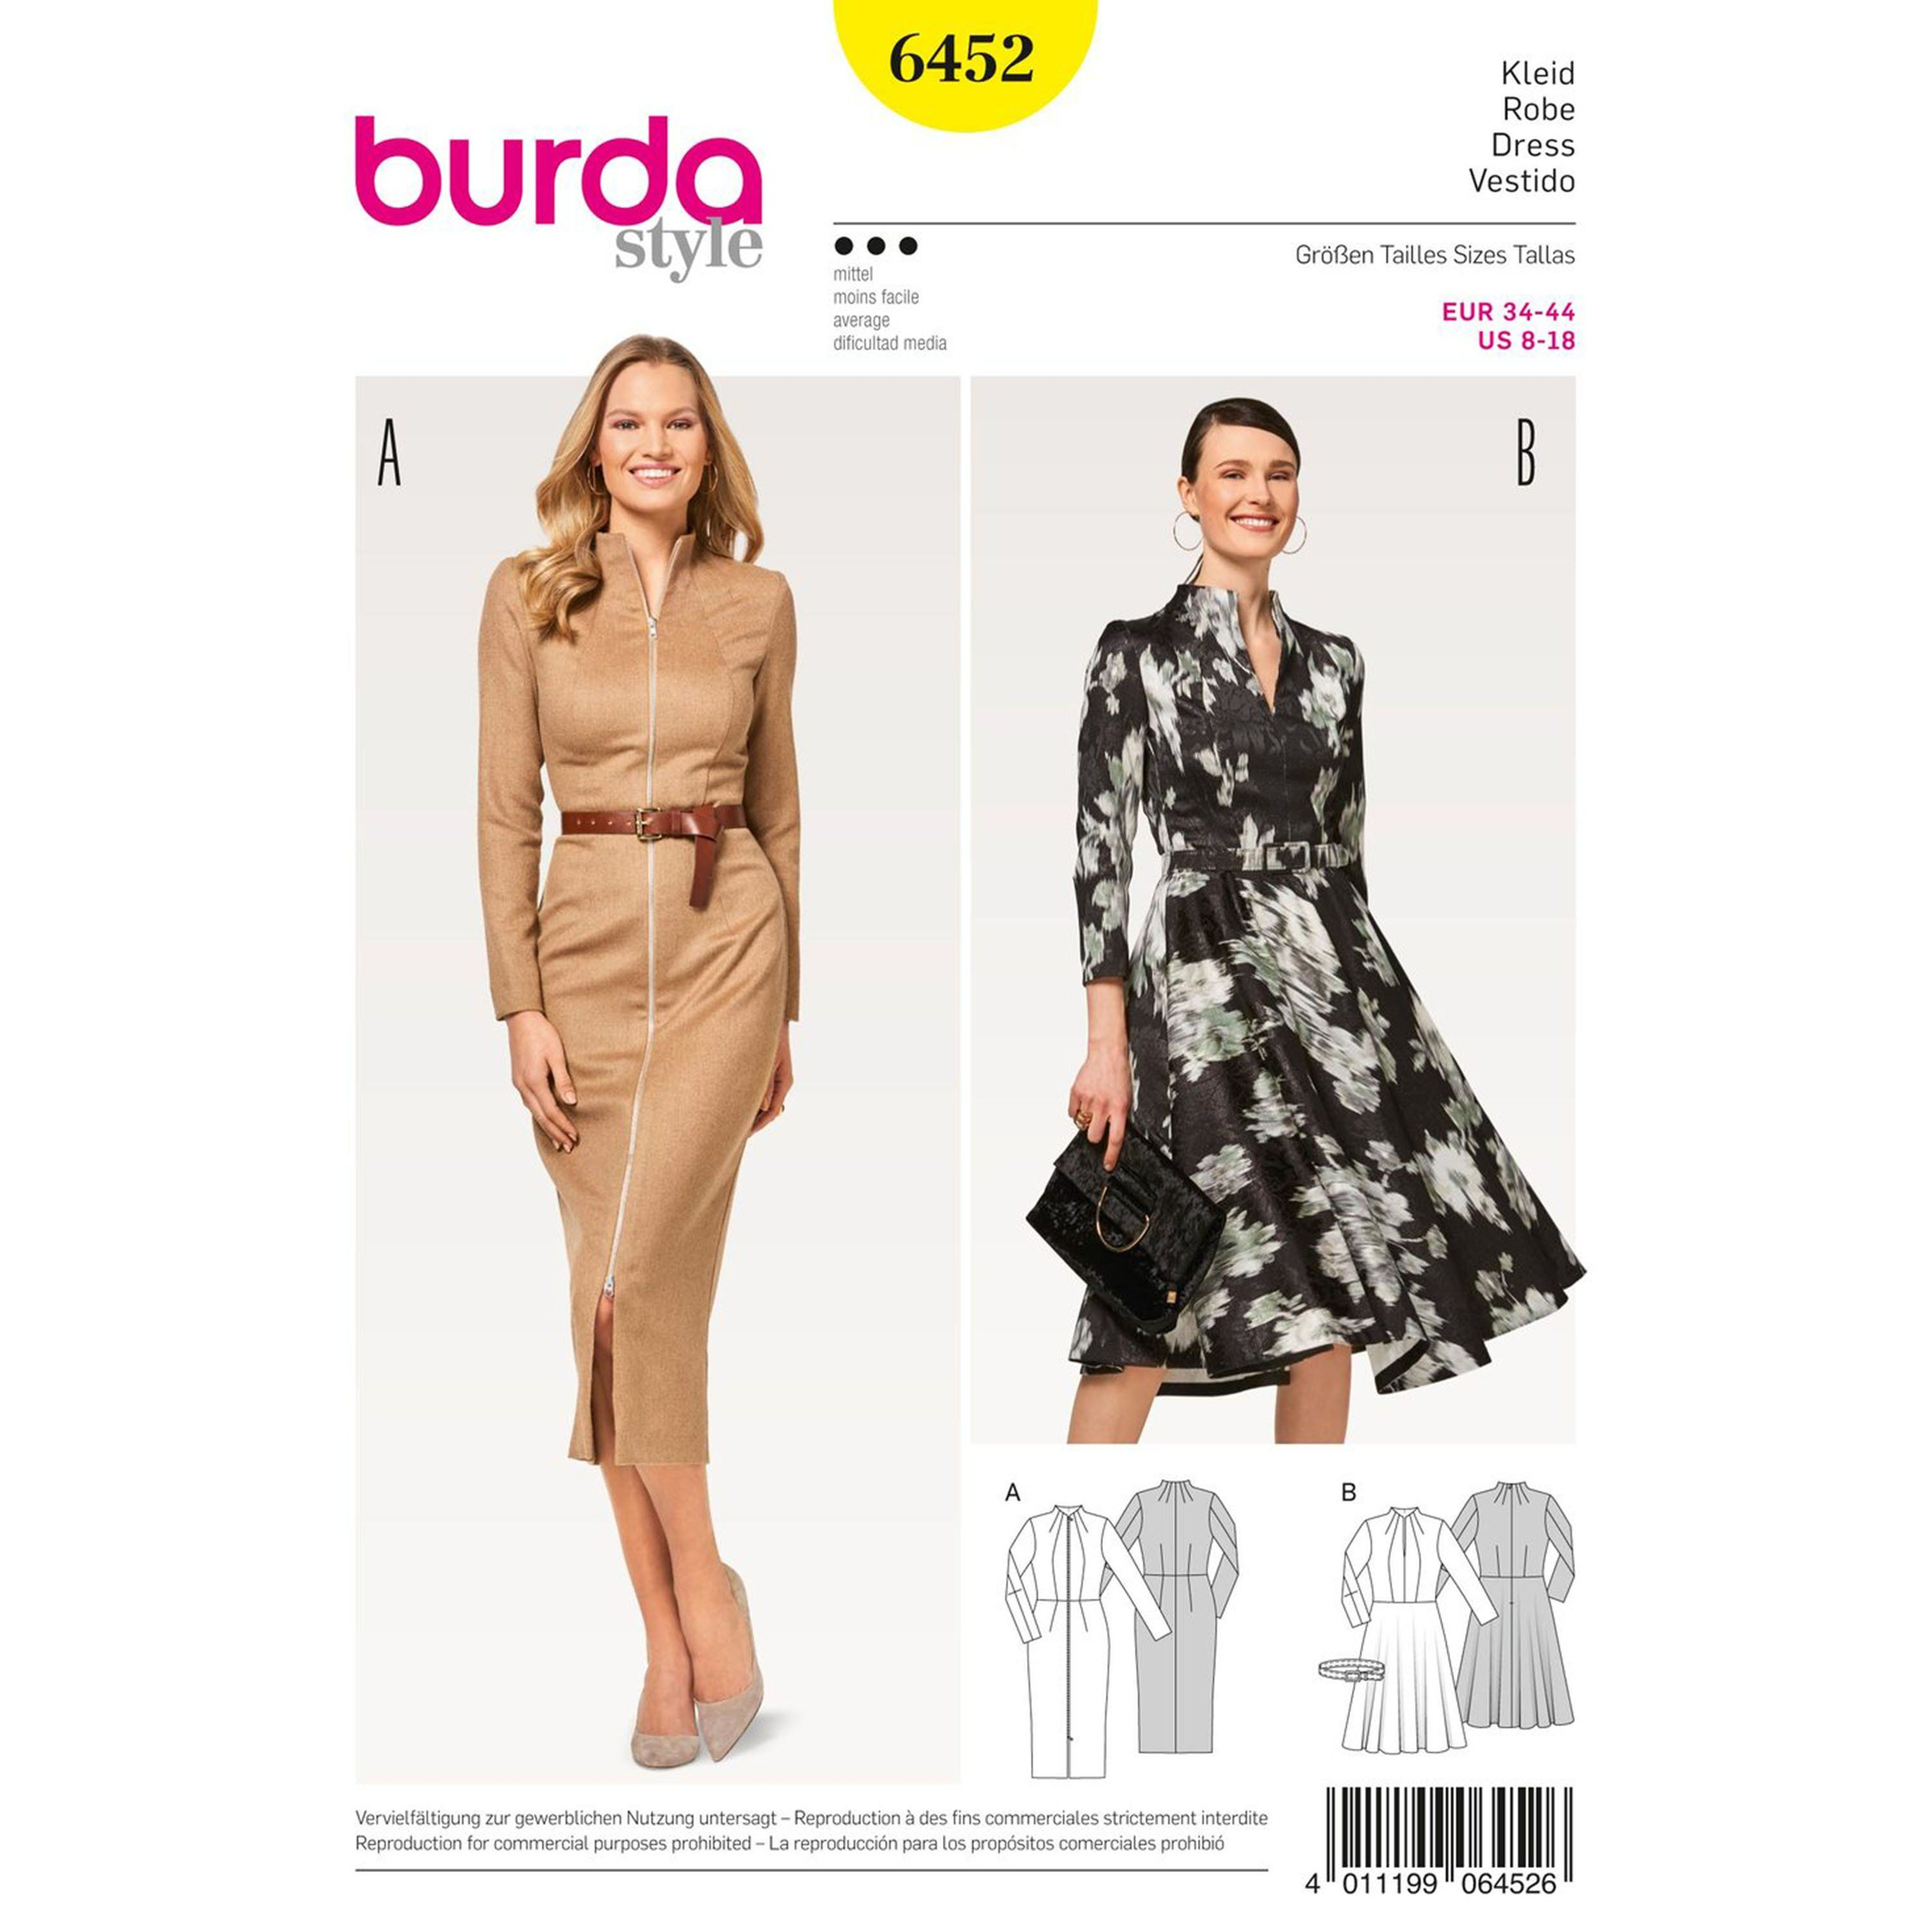 Two great Misses' dresses with attractive seams to cut a good figure. Both styles feature a high, shaped collar and narrow sleeves in two lengths. Find this Burda Style sewing pattern at Simplicity.com. #mittellangeröcke